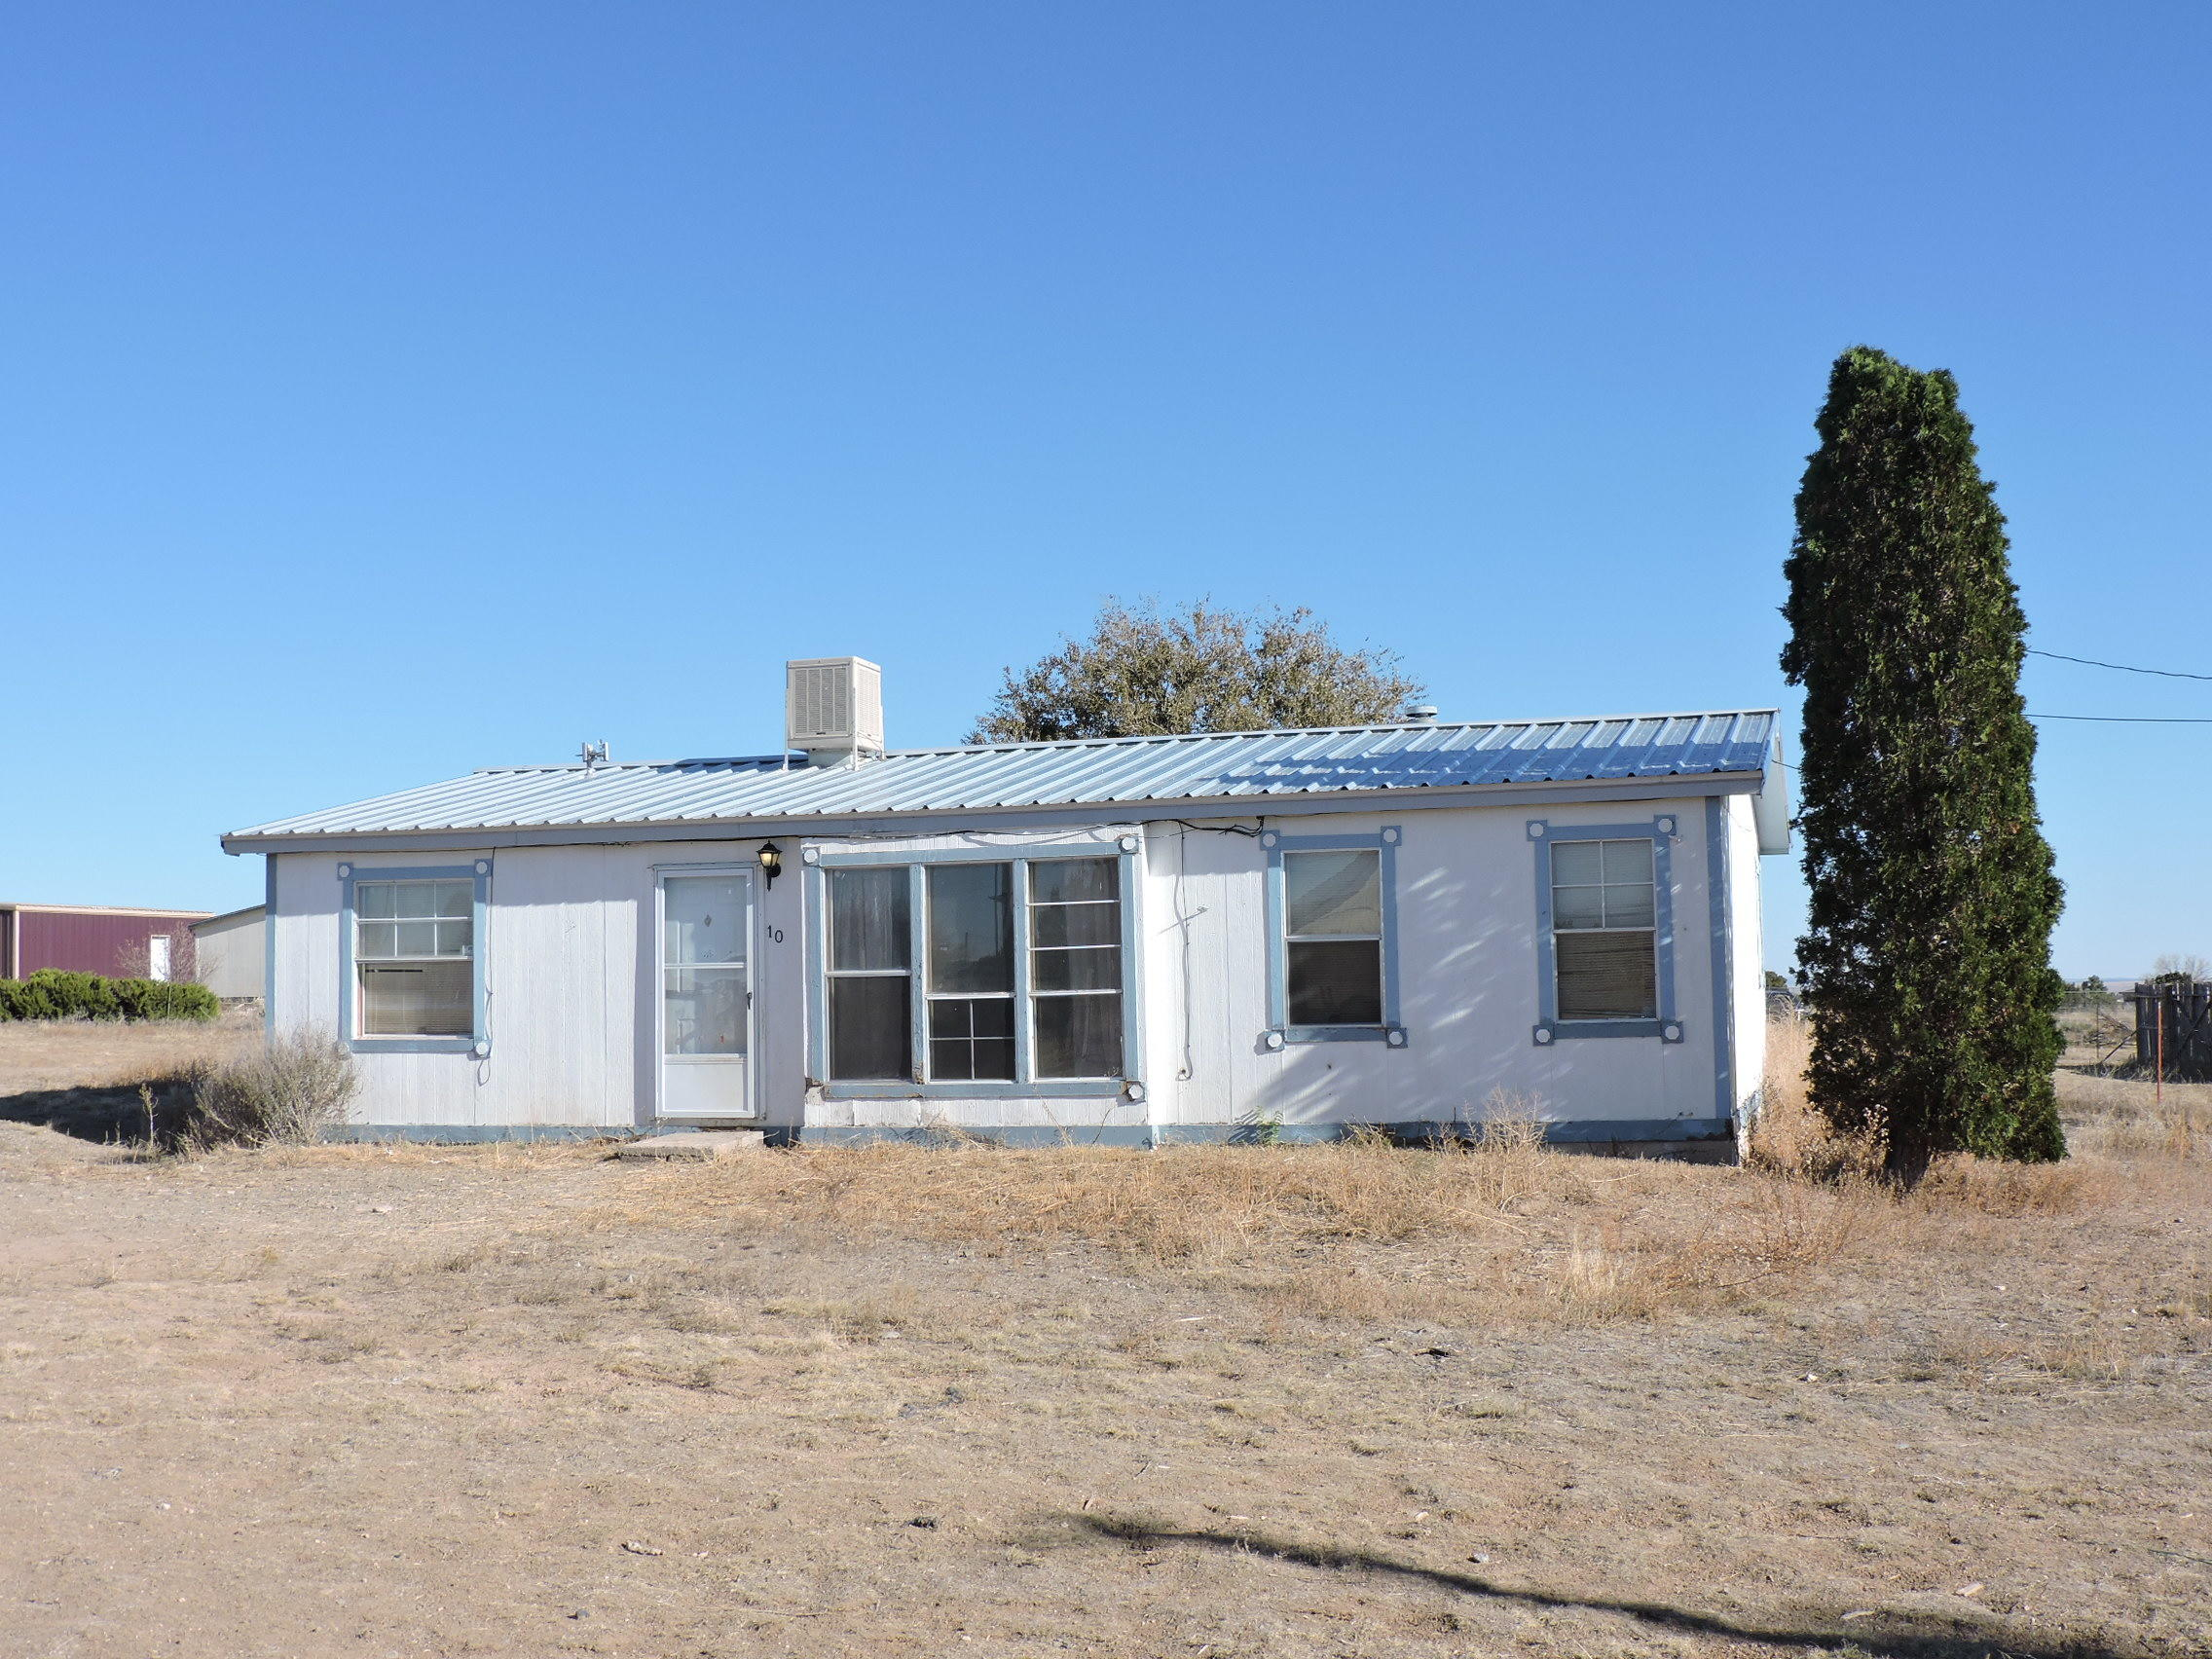 Doublewide home on 3/4 of and acre.  Appliances stay, property completely fenced, with a storage shed.